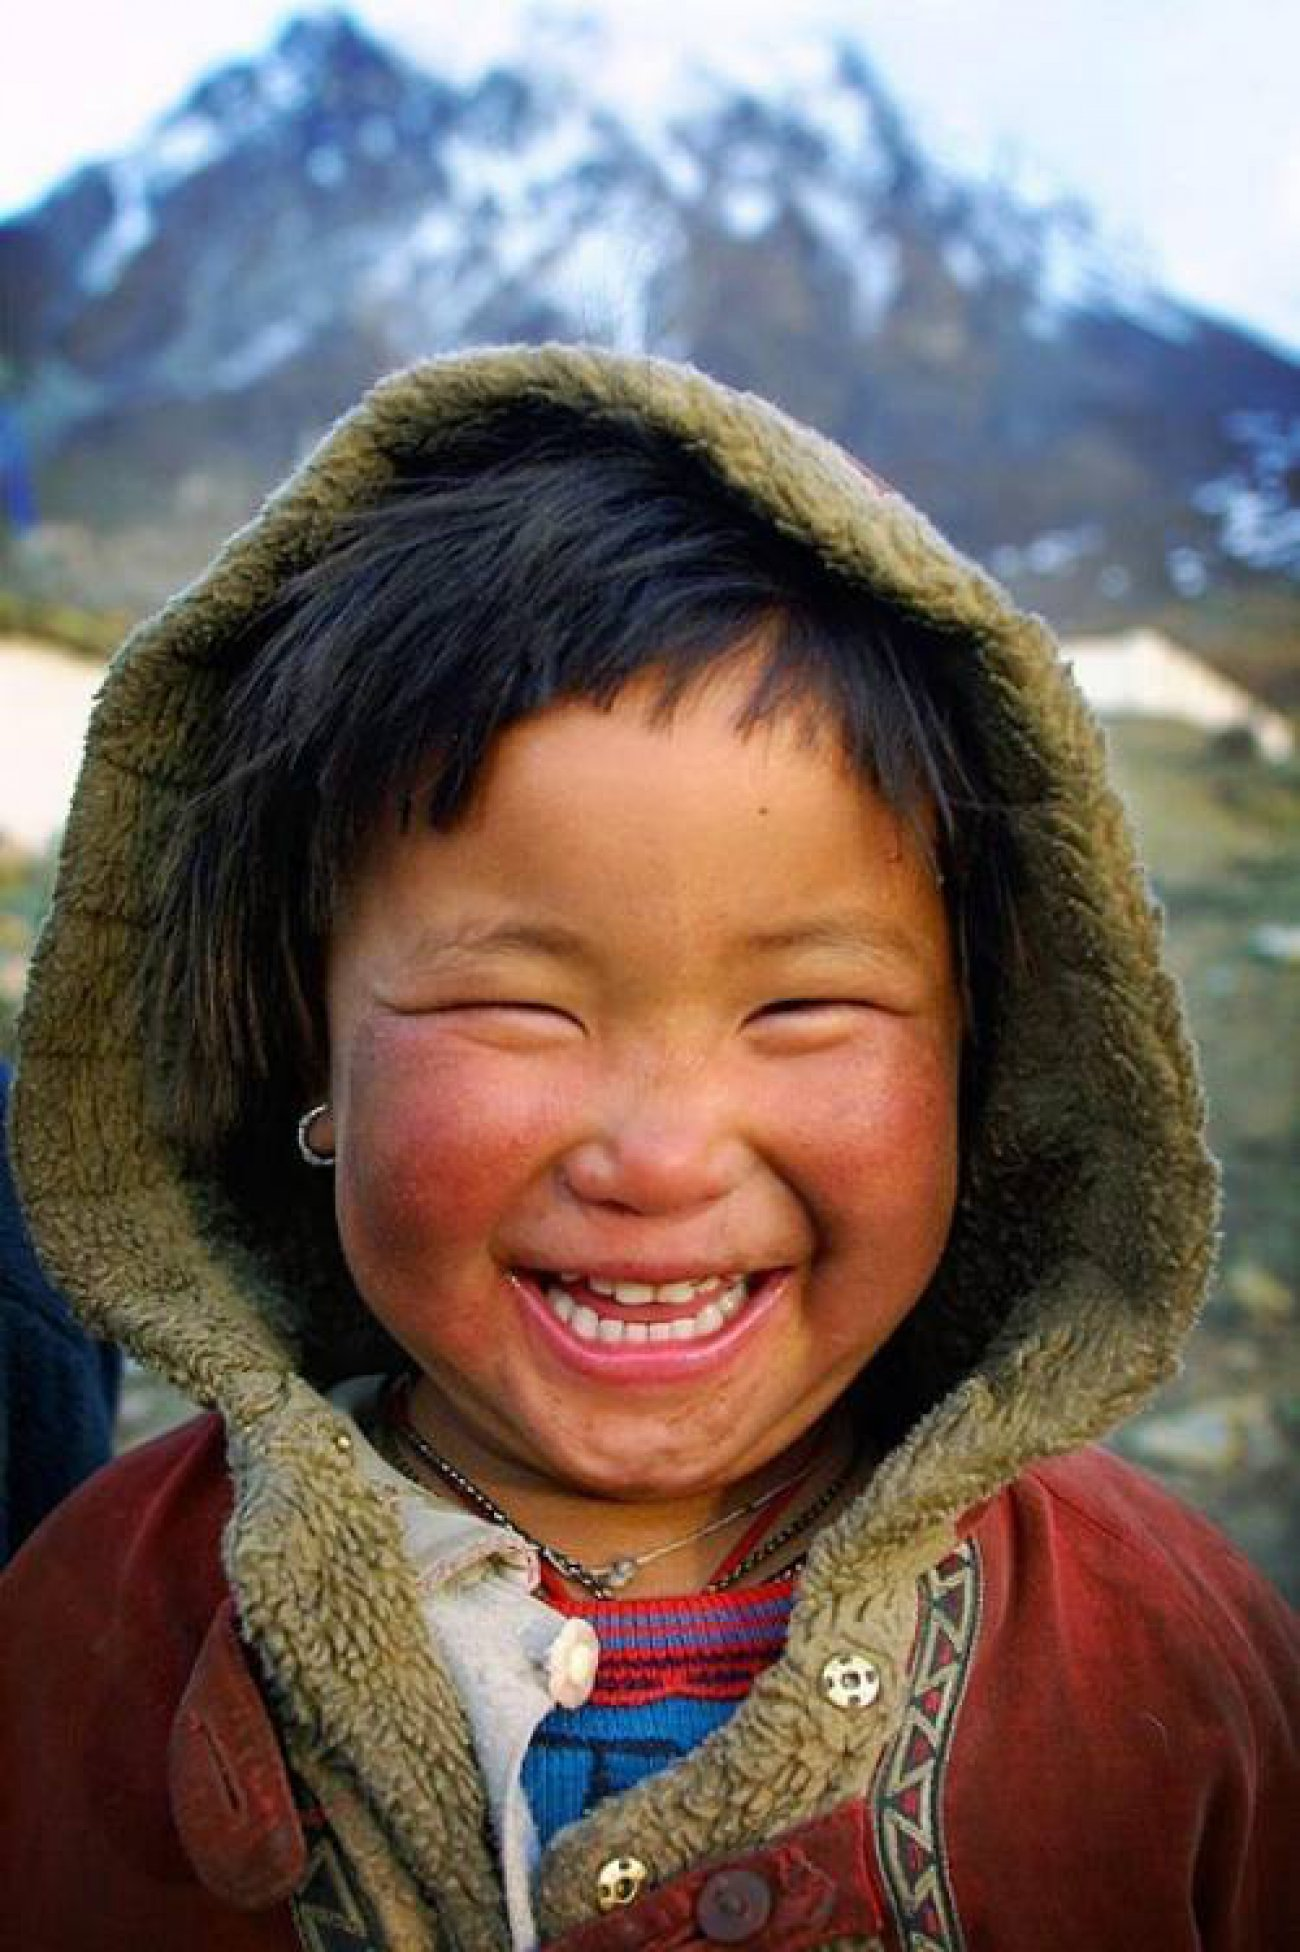 Children Smilling_3